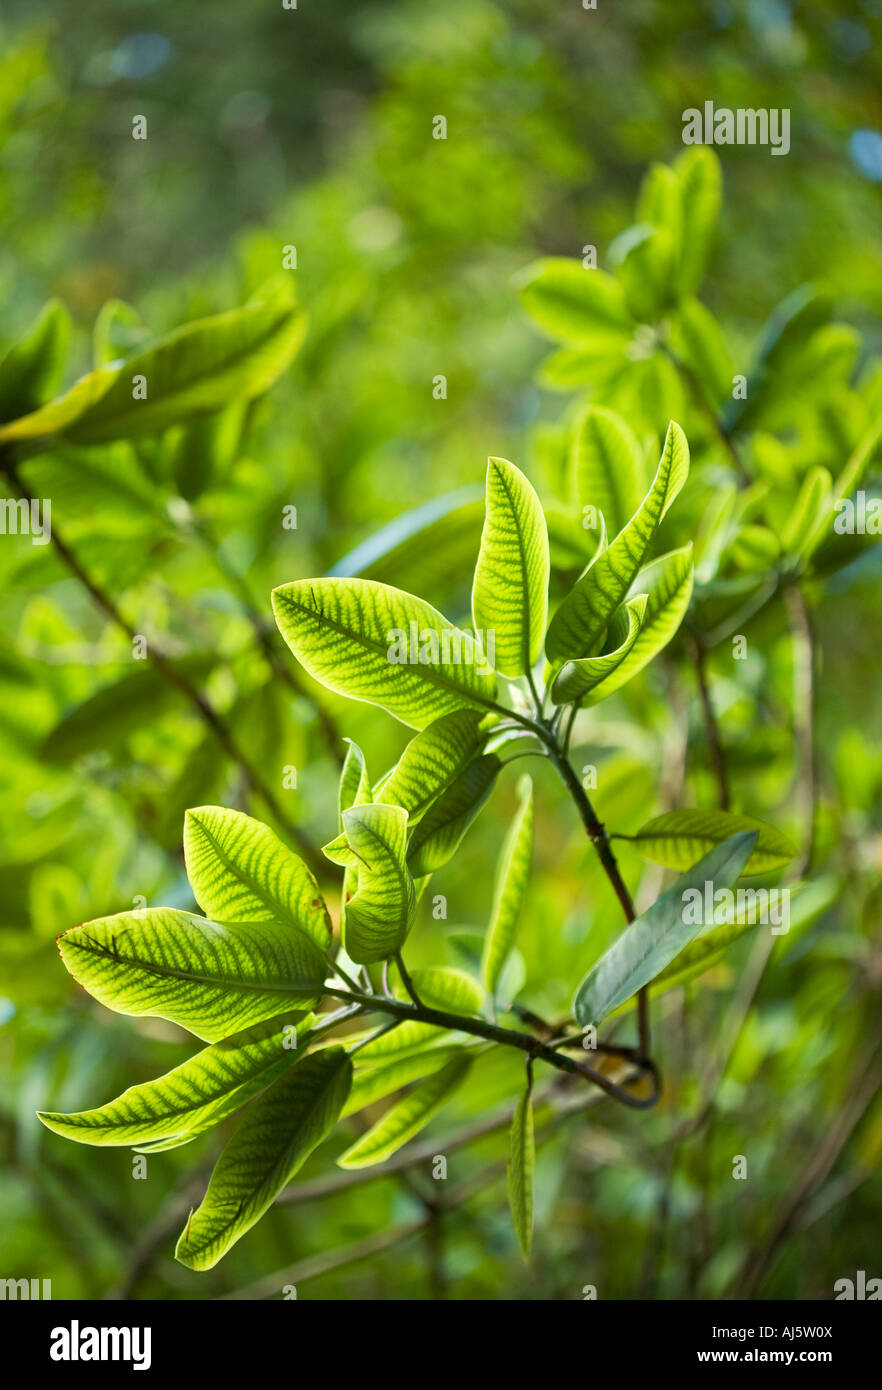 Rhododendron foliage - Stock Image